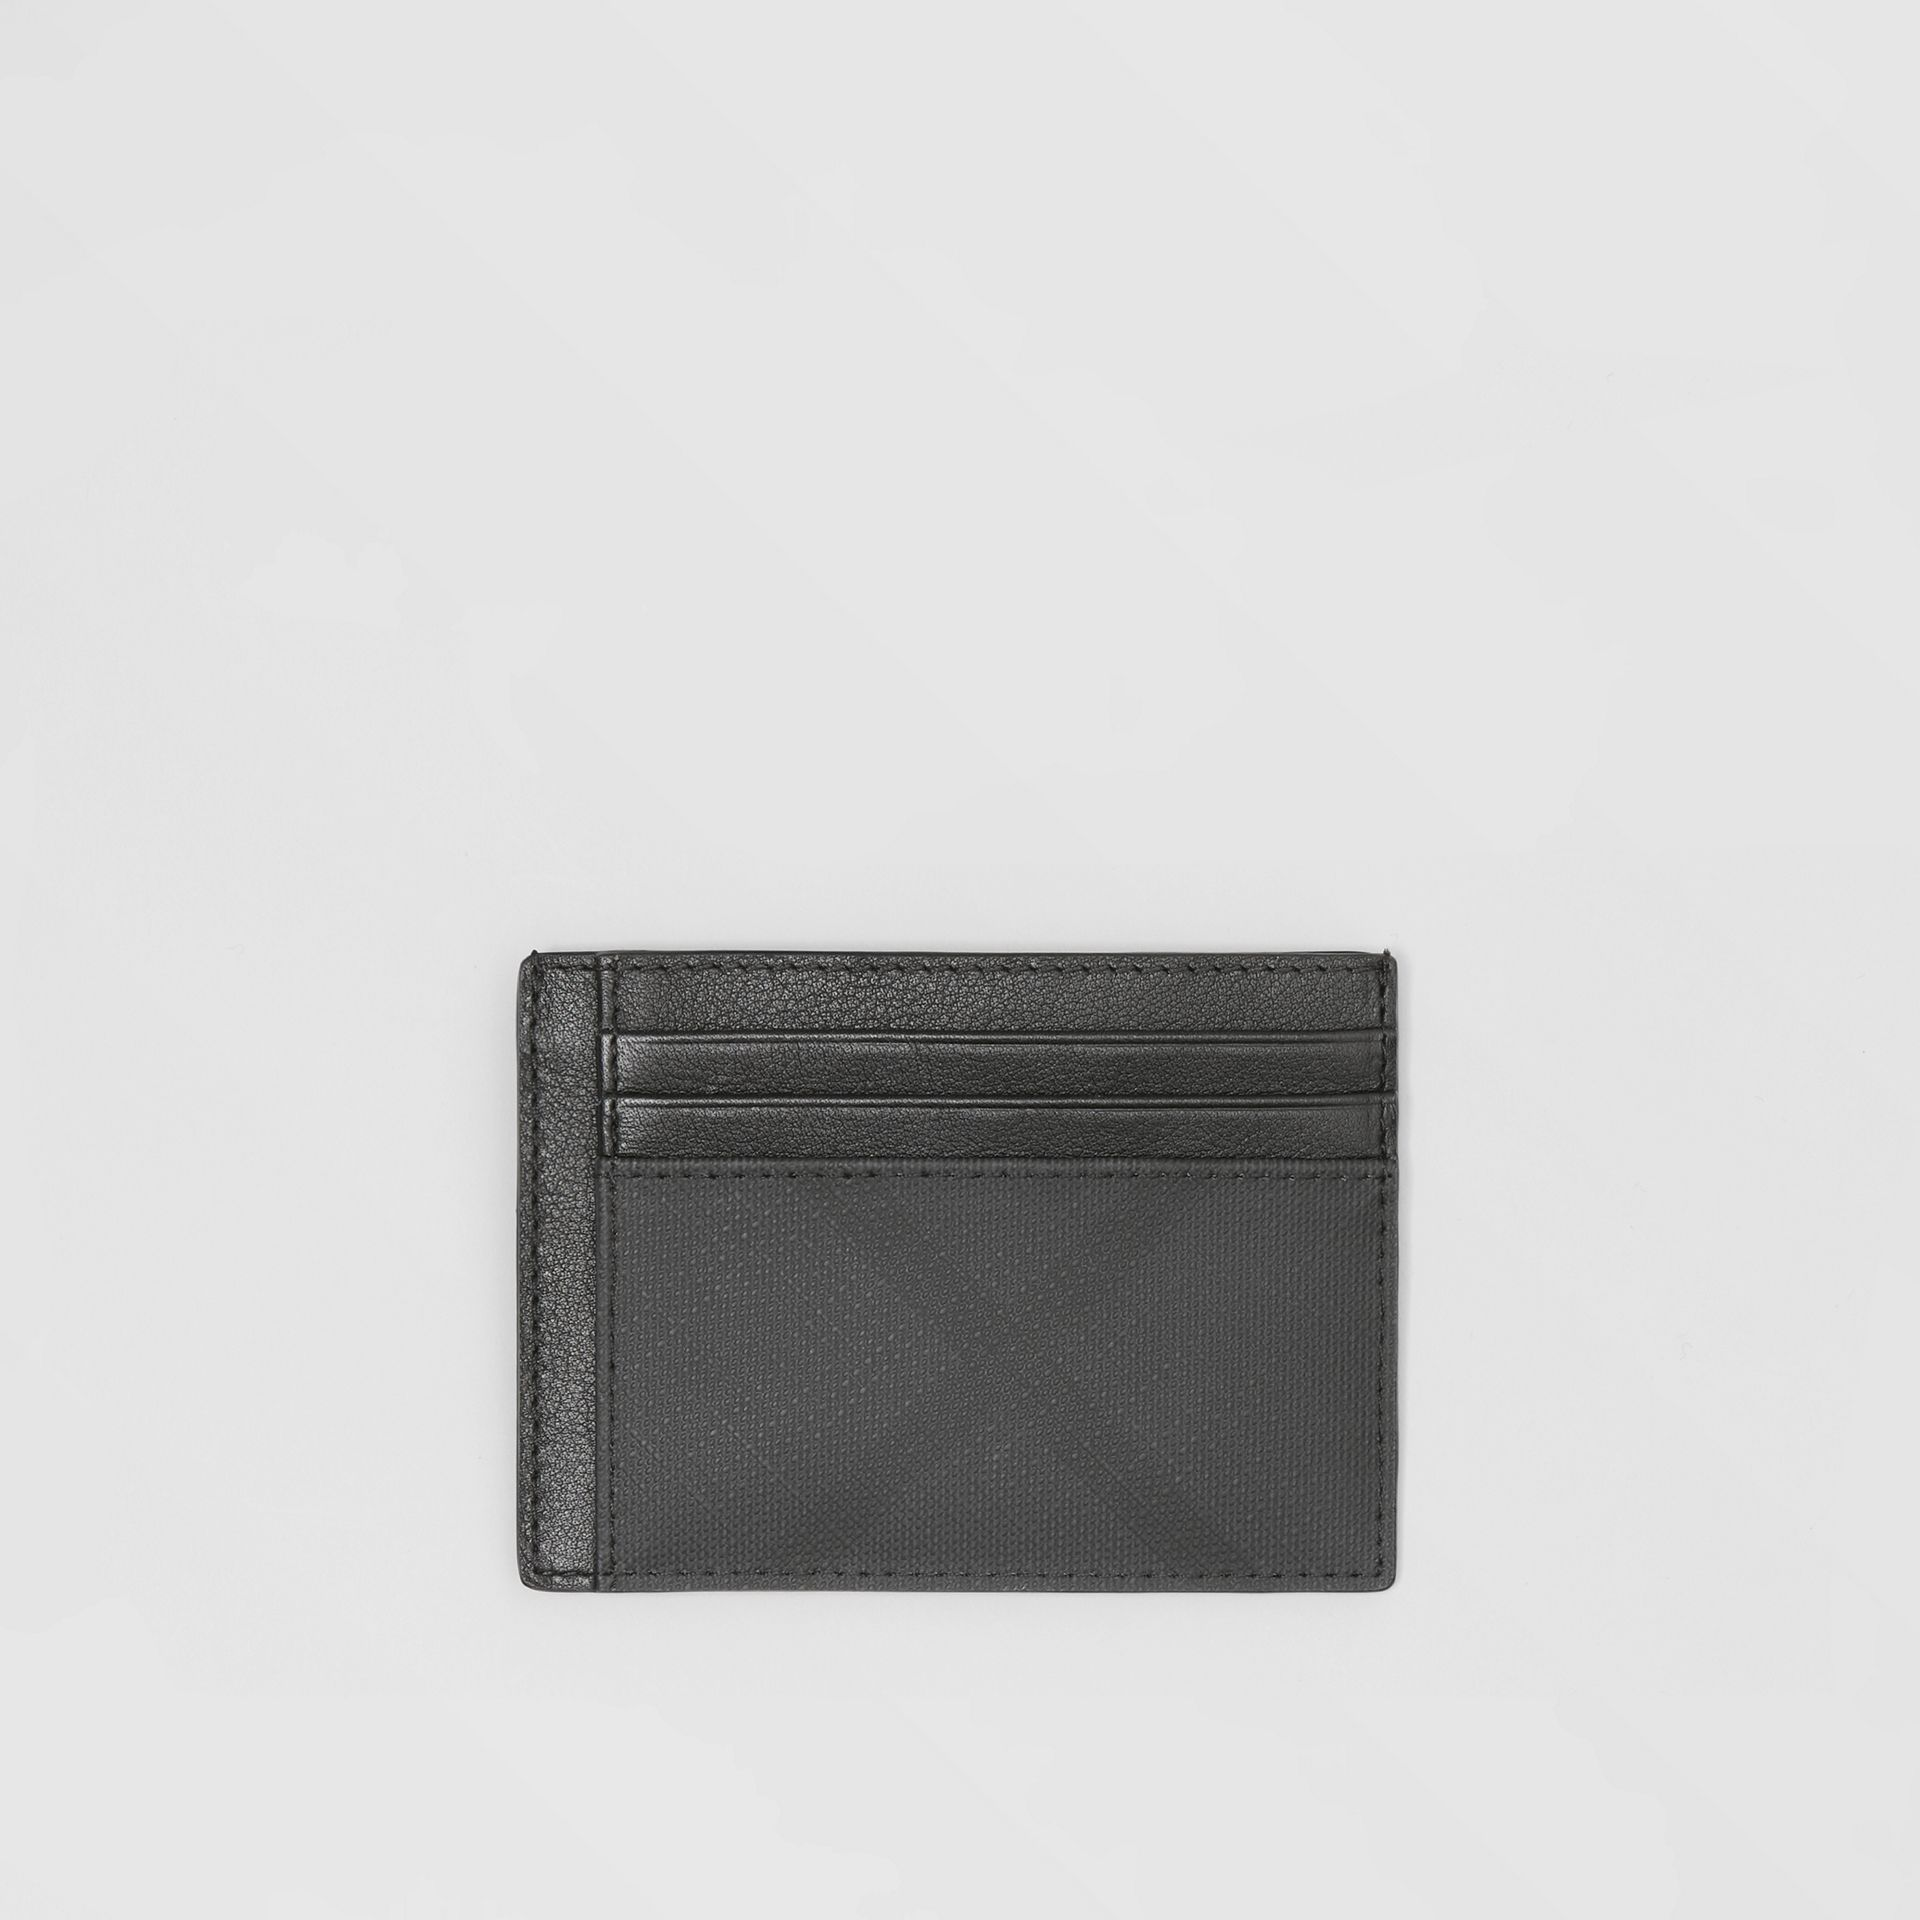 London Check and Leather Card Case in Dark Charcoal - Men | Burberry - gallery image 0